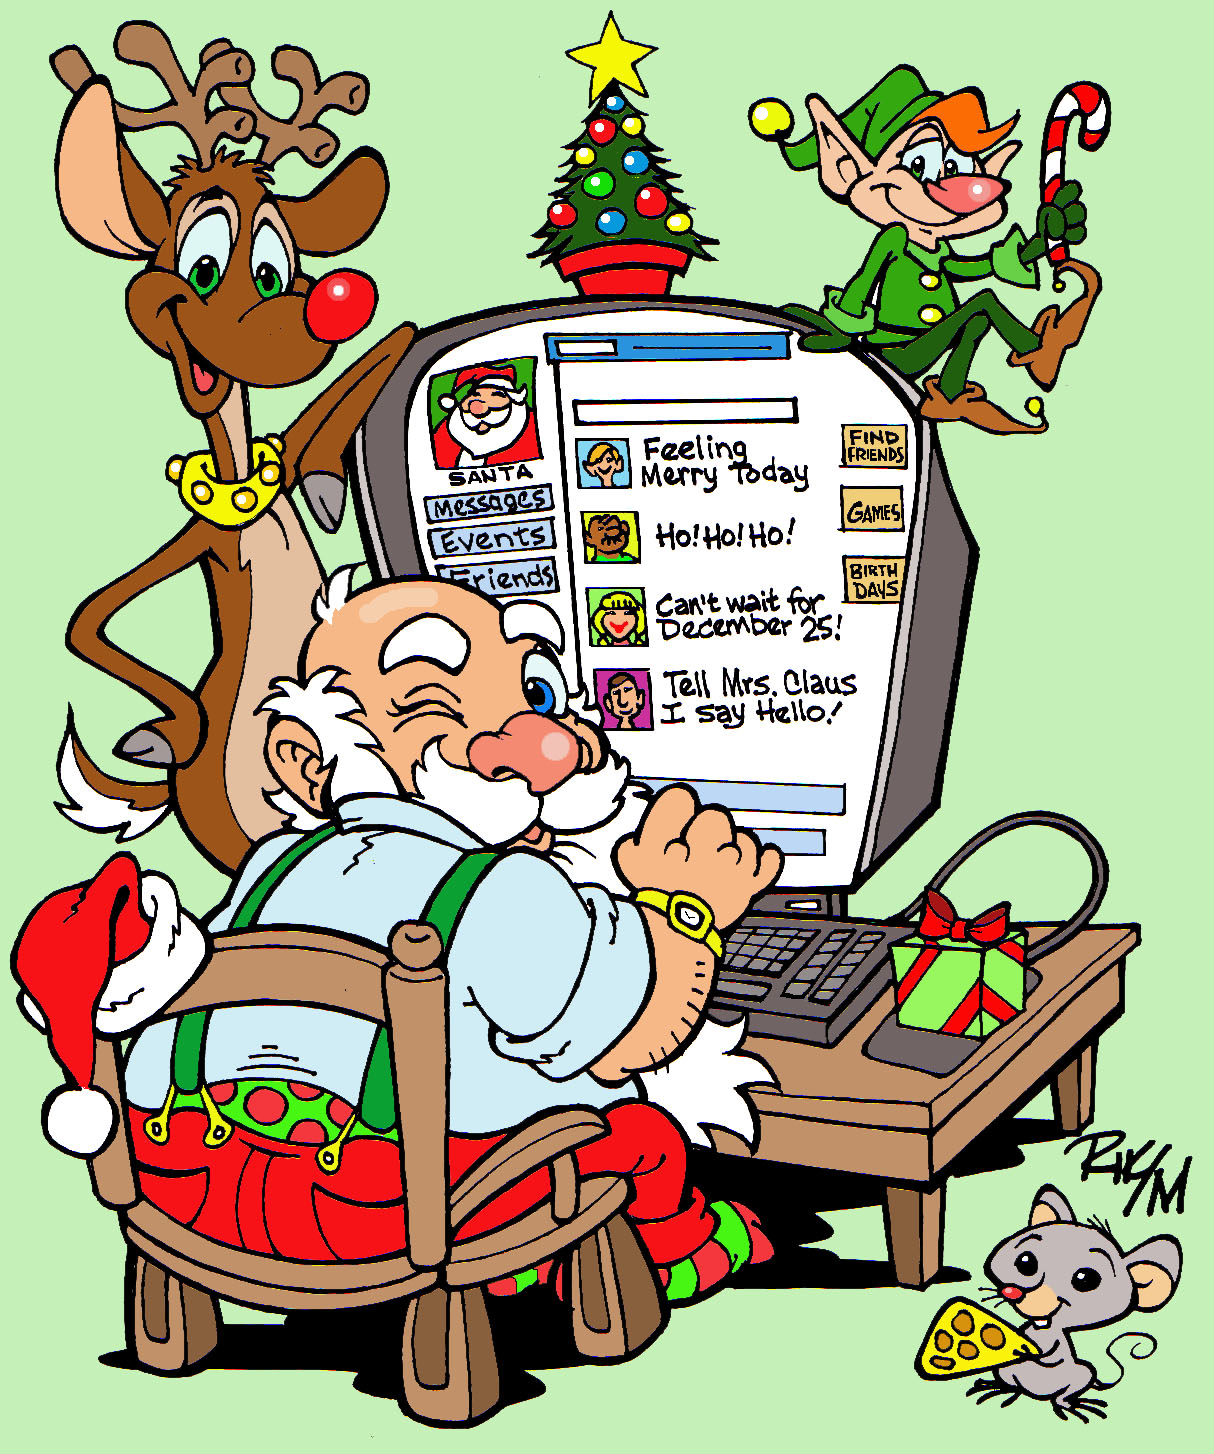 Riktoonz cartoonistcaricaturist rick c moore december 2010 own own personal christmas greeting for all my friends and family on facebook christmas 2010 kristyandbryce Gallery